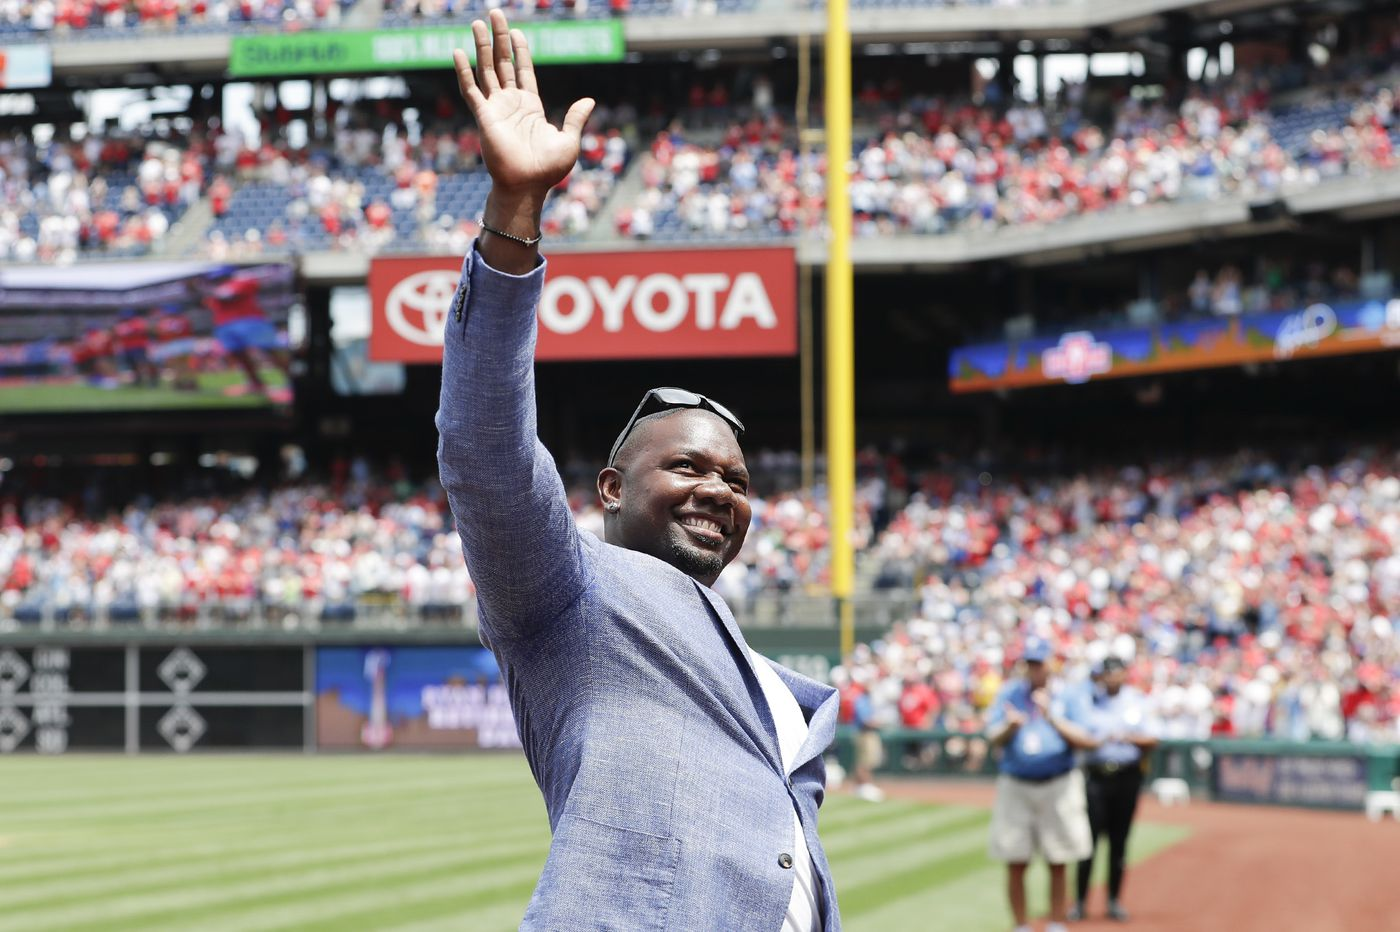 Ryan Howard ends retirement speech by telling fans not to boo struggling Phillies